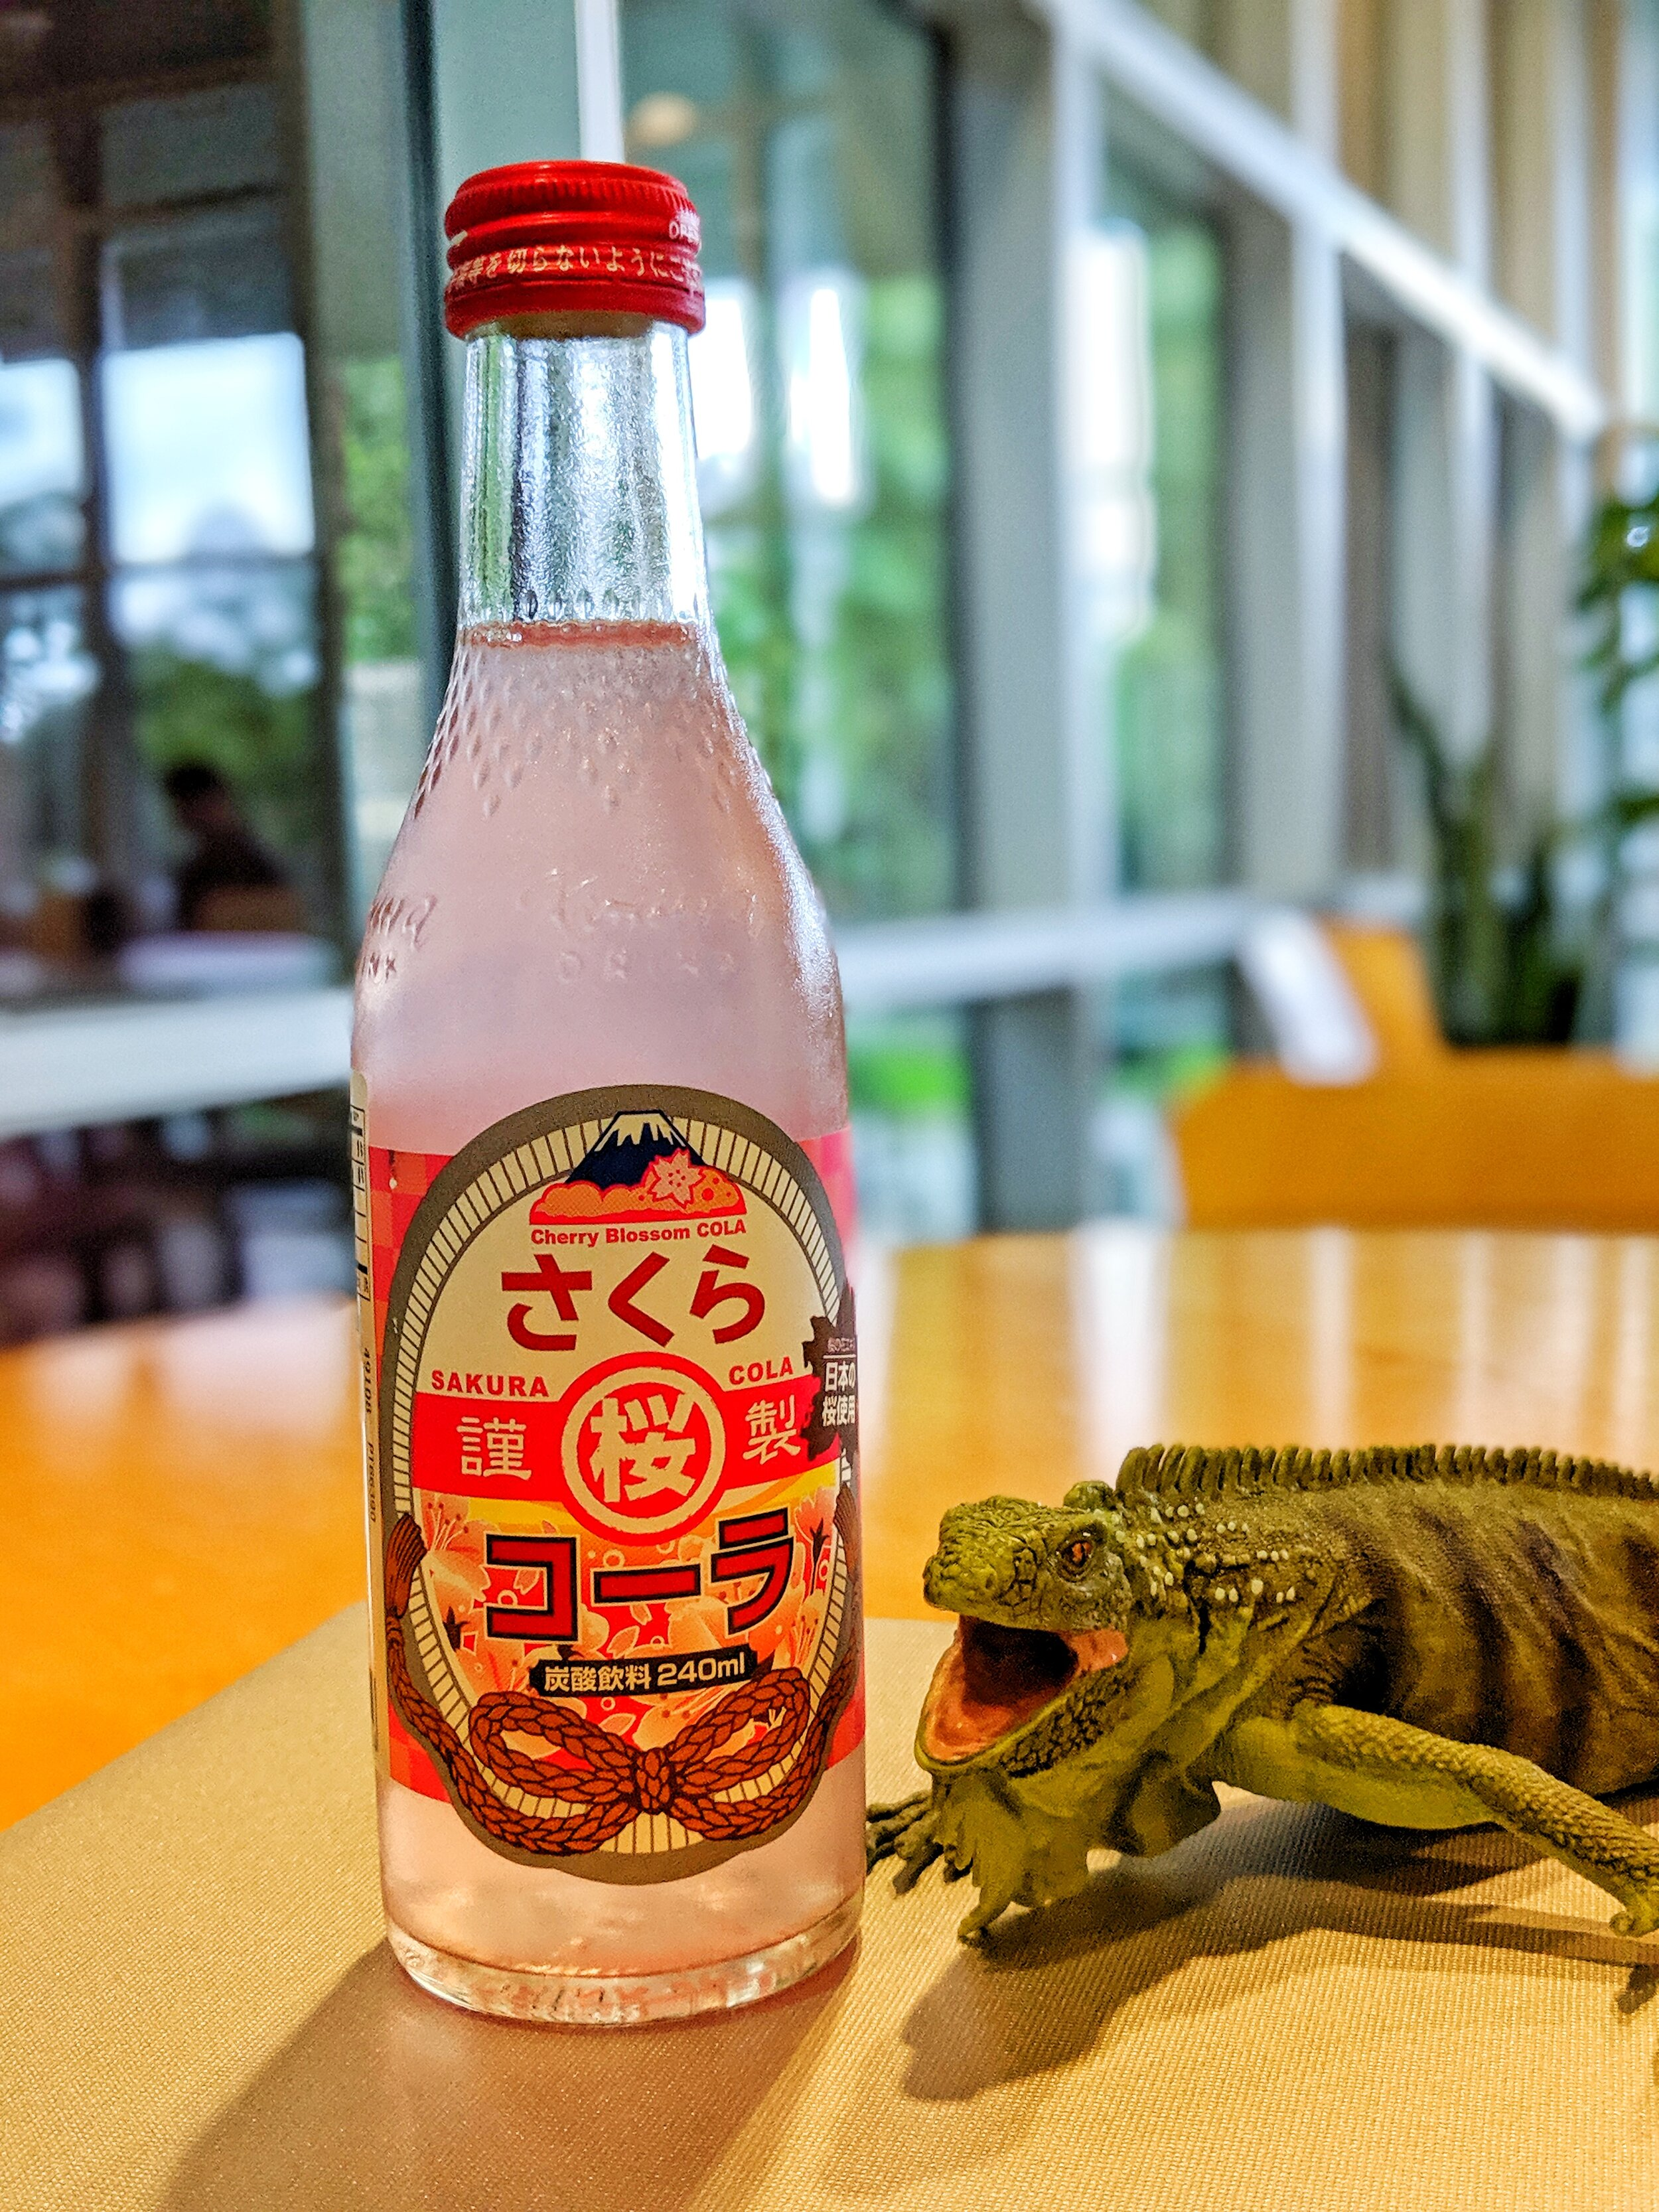 Iguana in Japanese is イグアナ